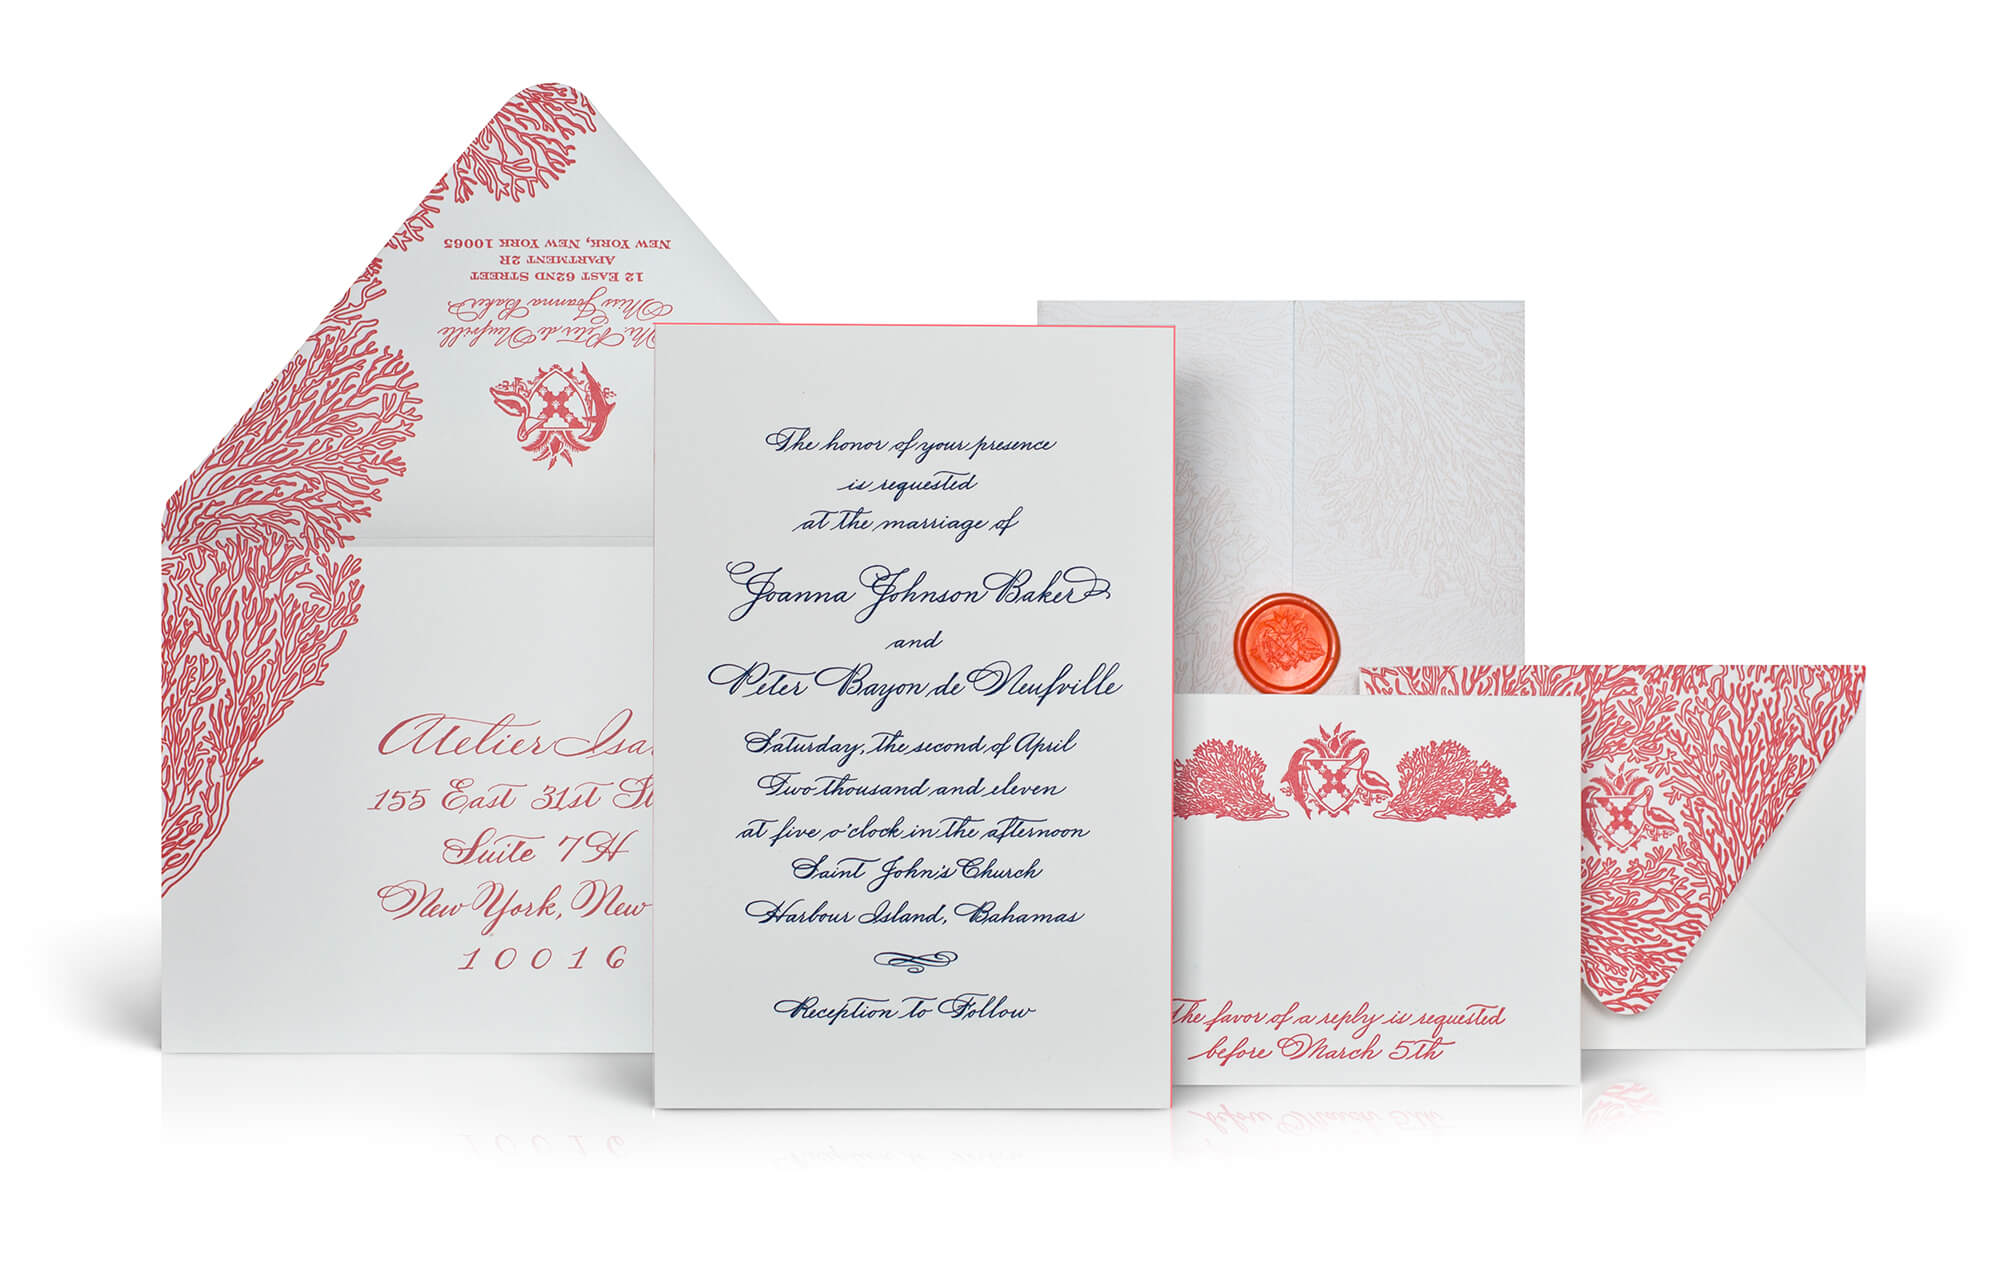 Engraved calligraphy, corals, watercolor on a Bahamas wedding invitation